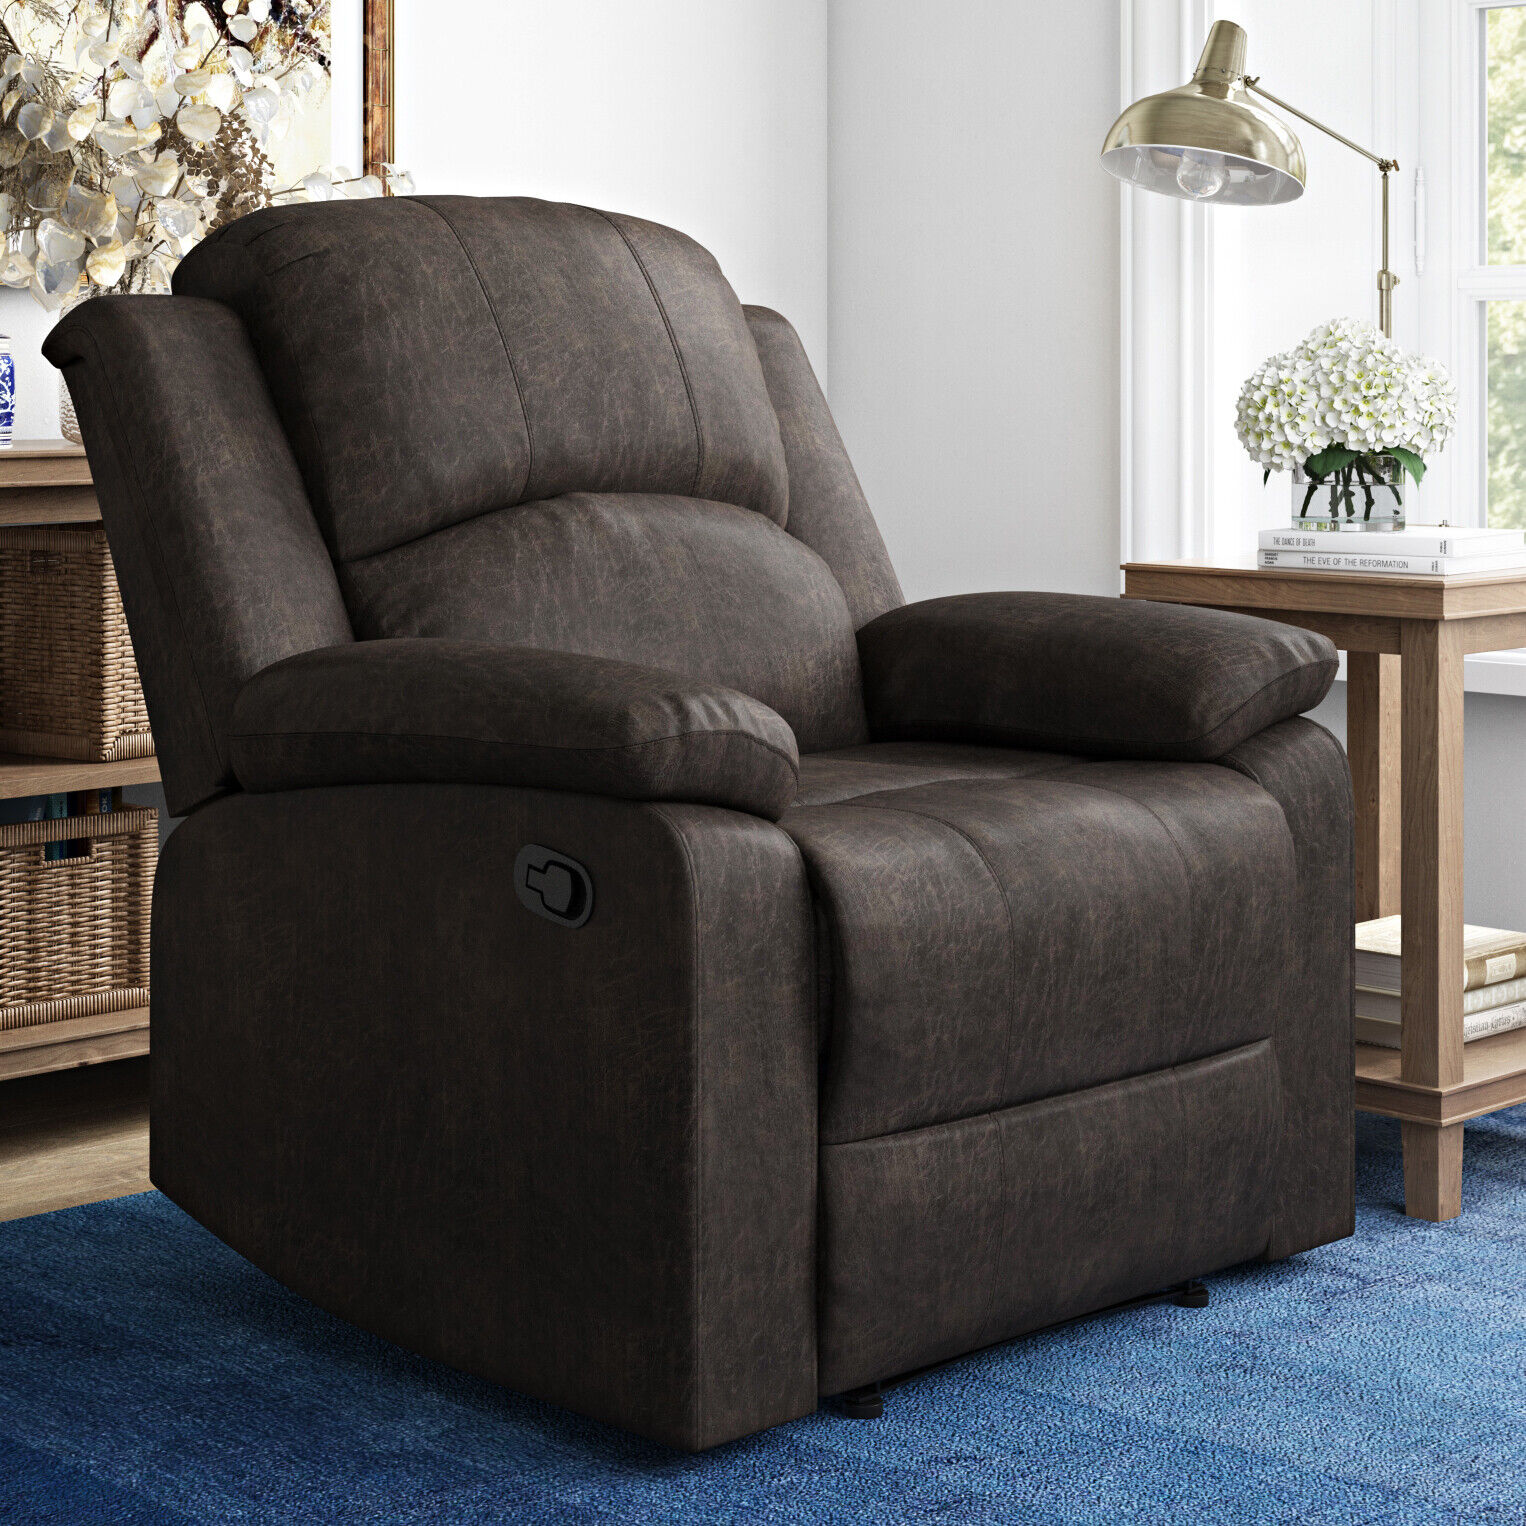 Recliner Chair Lifestyle Solutions Reynolds Manual Faux Sued